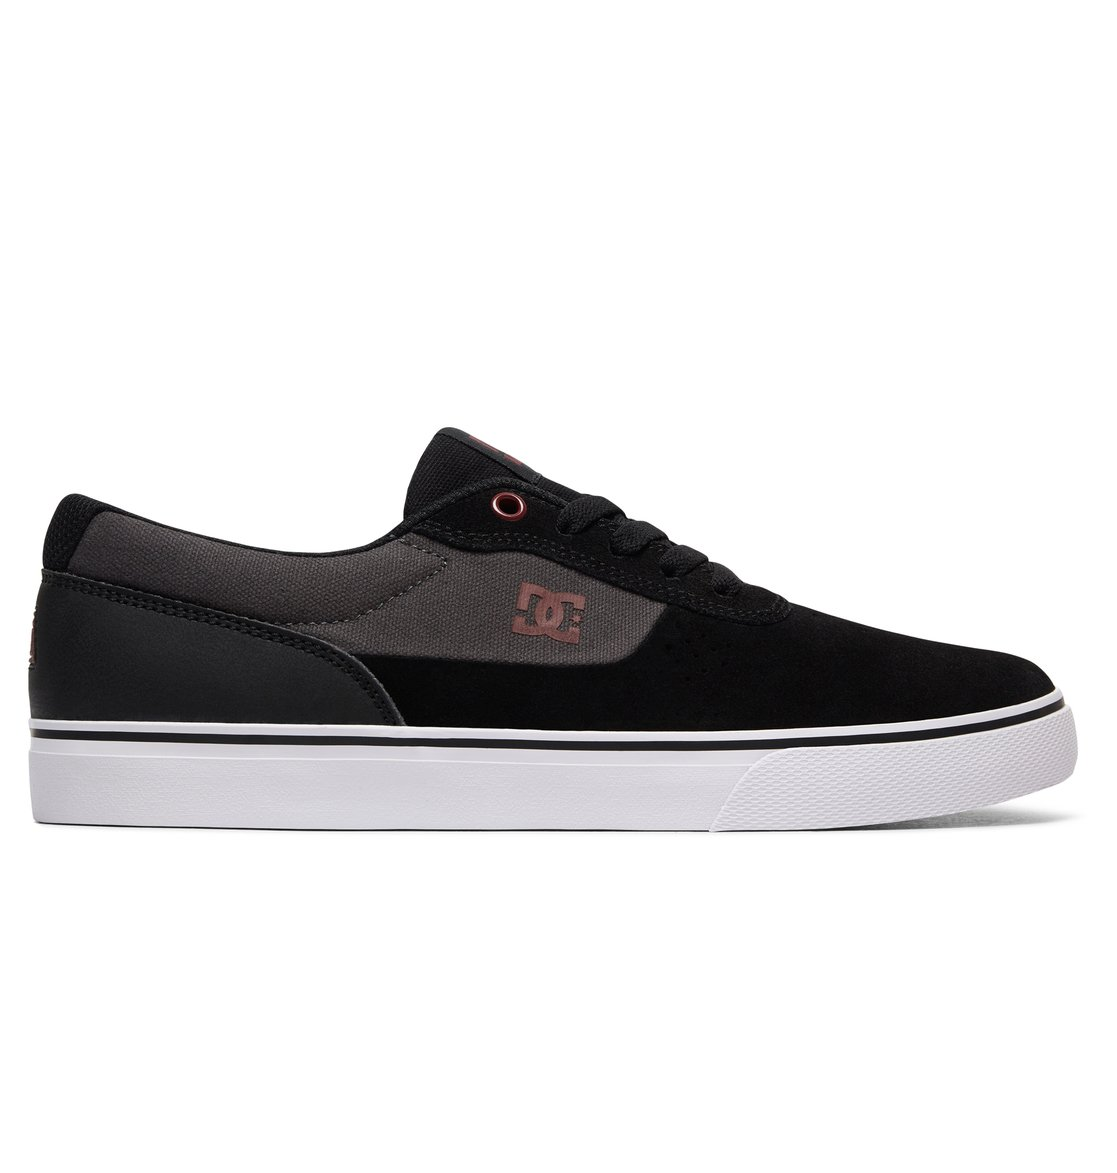 DC Shoes Chaussures Switch S Chaussure Homme DC Shoes soldes I5lMTJ